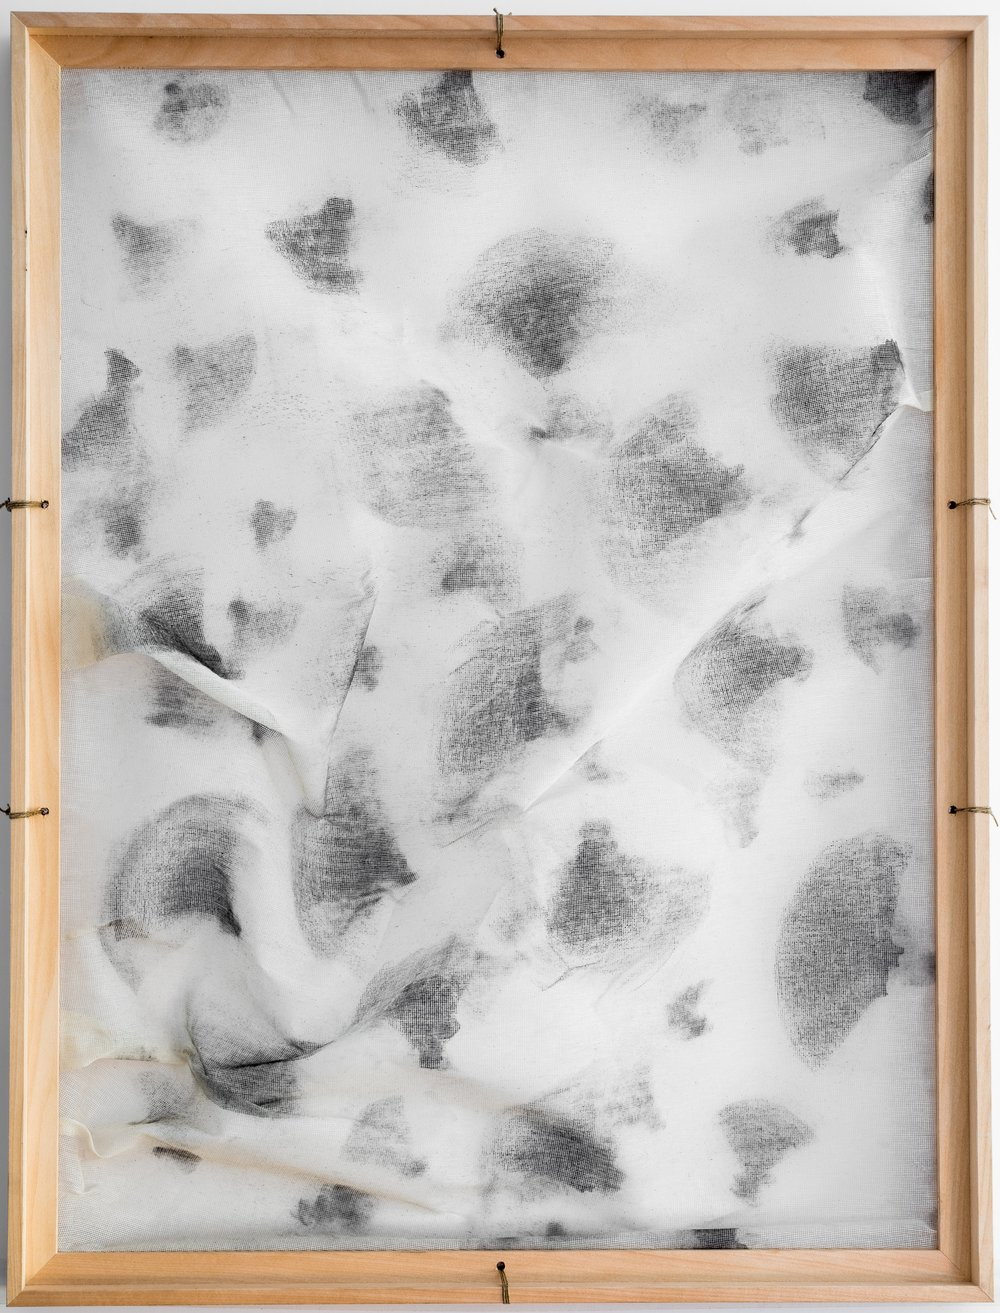 Moment Between Thoughts / Part V   ,   2016 Chalk on gauze, wooden frame structure 84 x 64 cm (33 x 25 in)